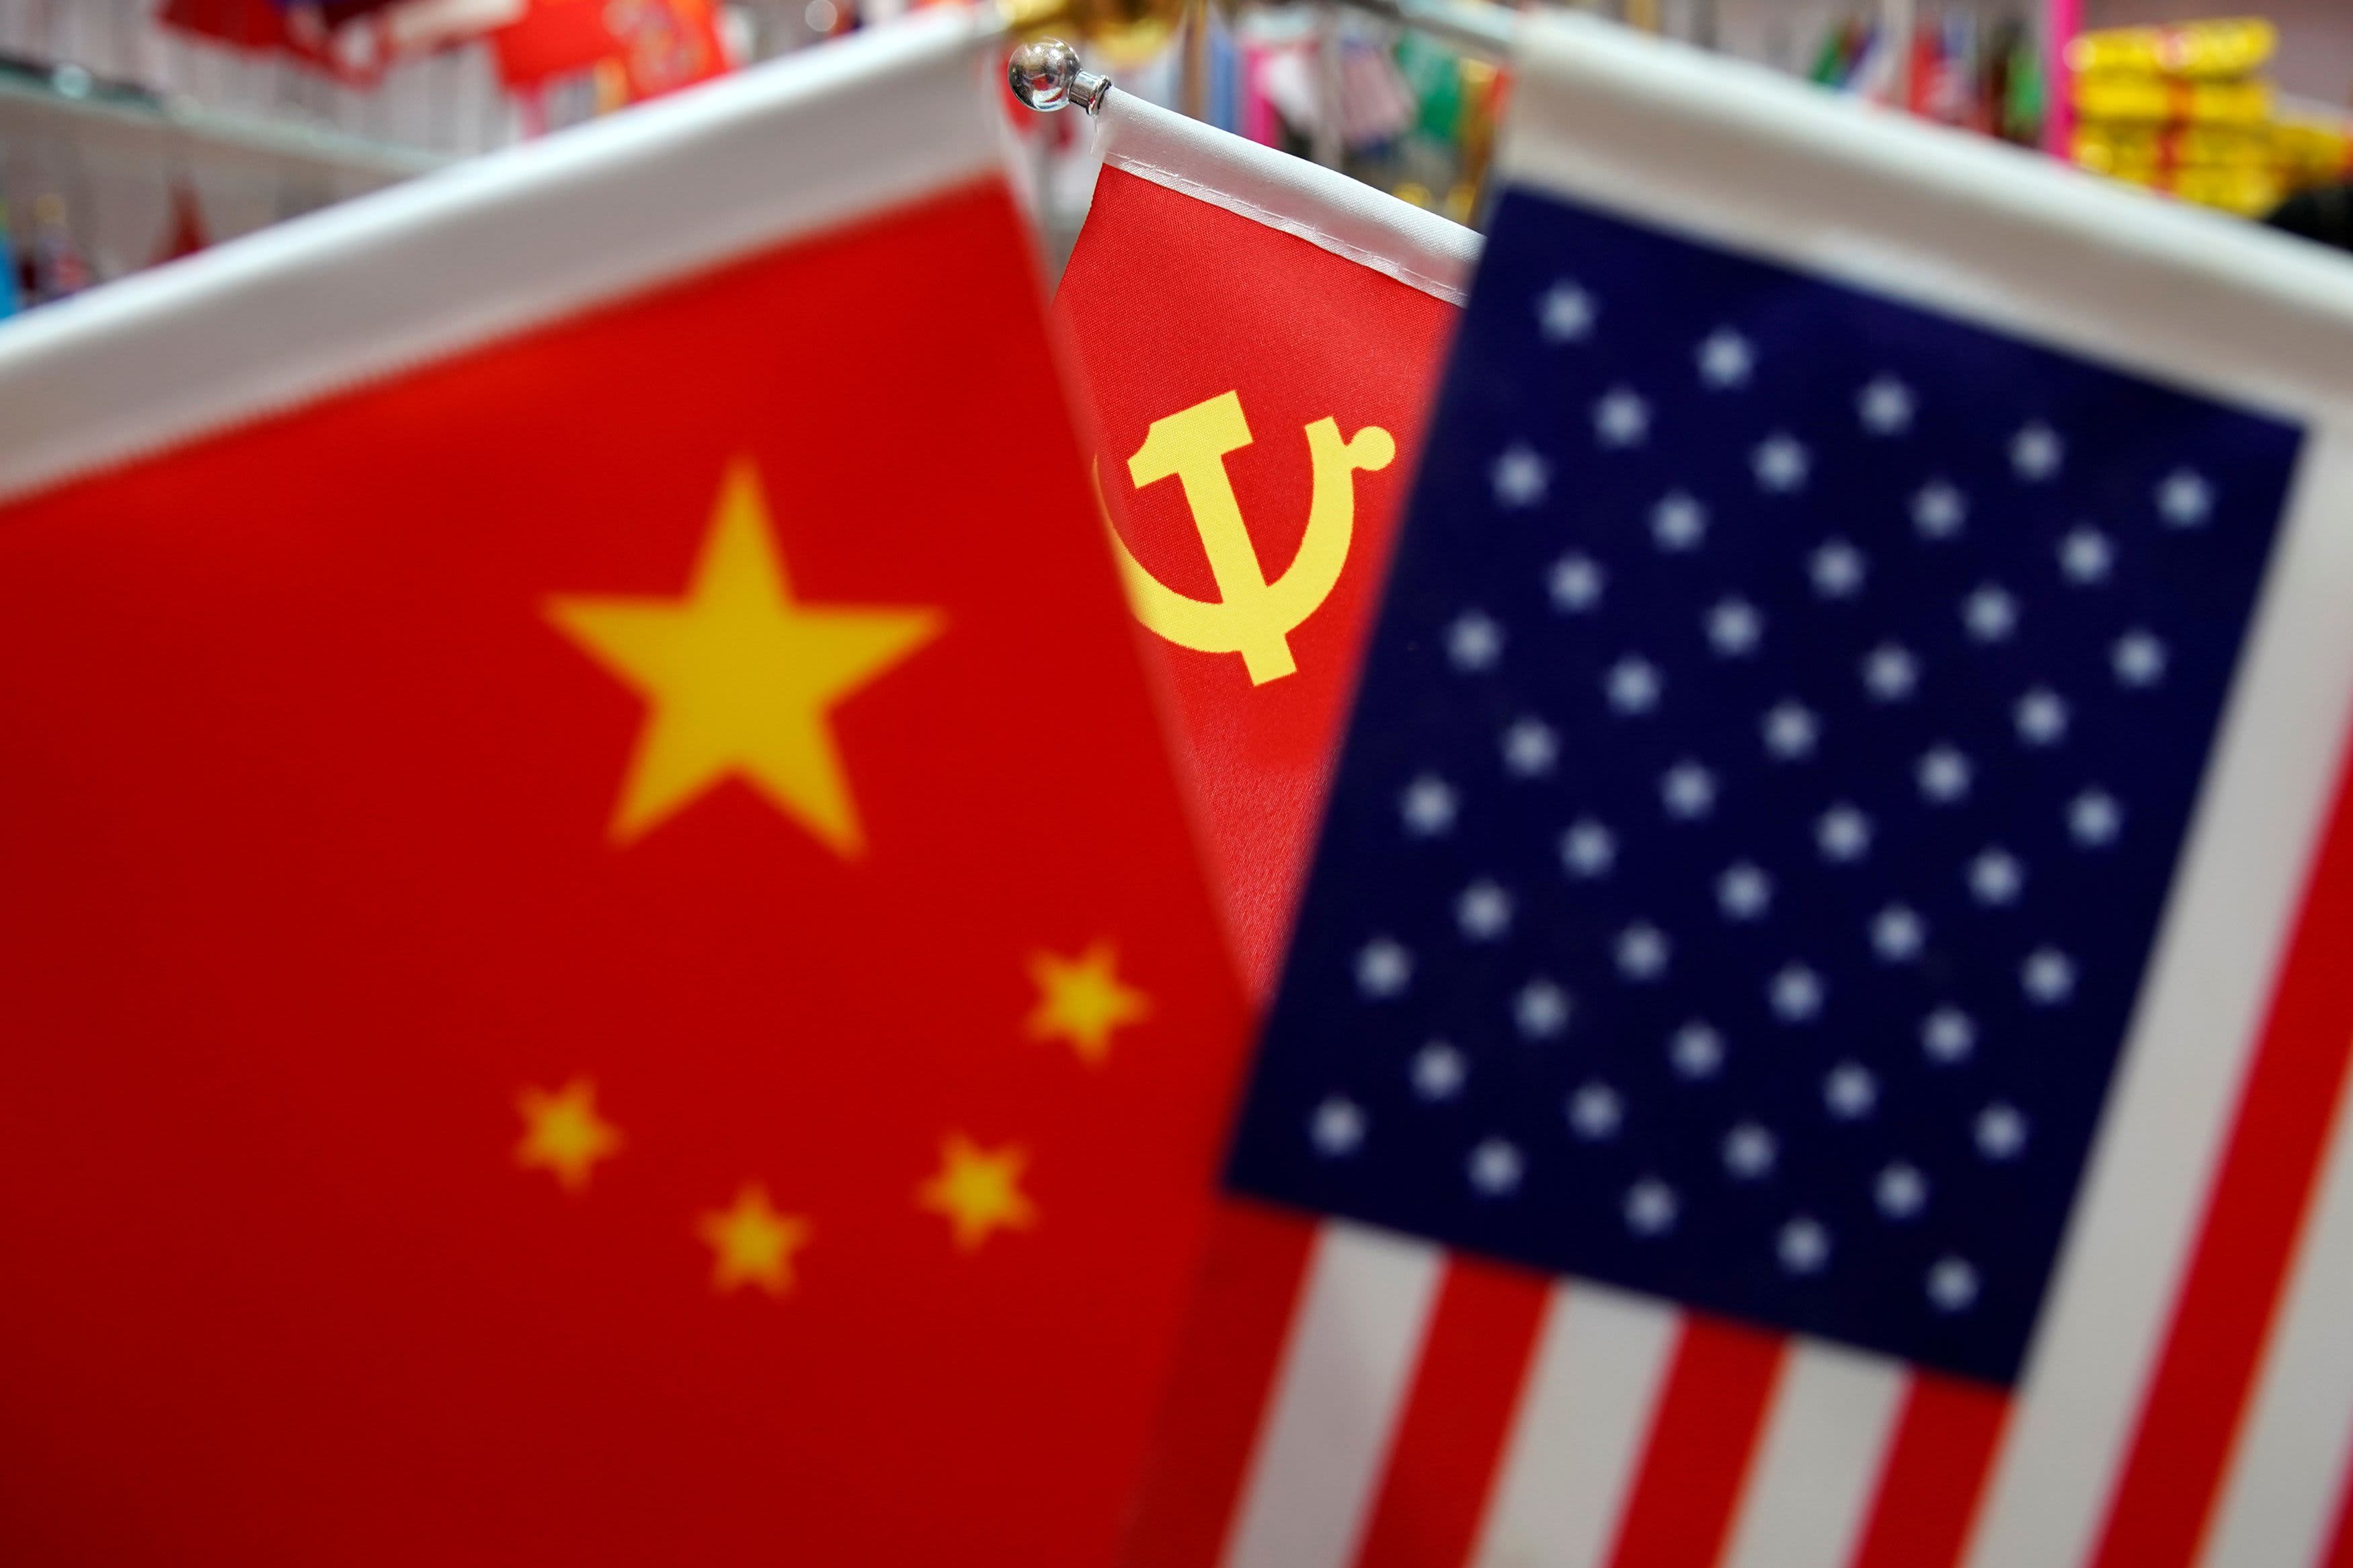 Chinese Foreign Minister Takes Firm Tone, Calls for 'Non-Interference' Between China and the U.S. – NBC10 Philadelphia